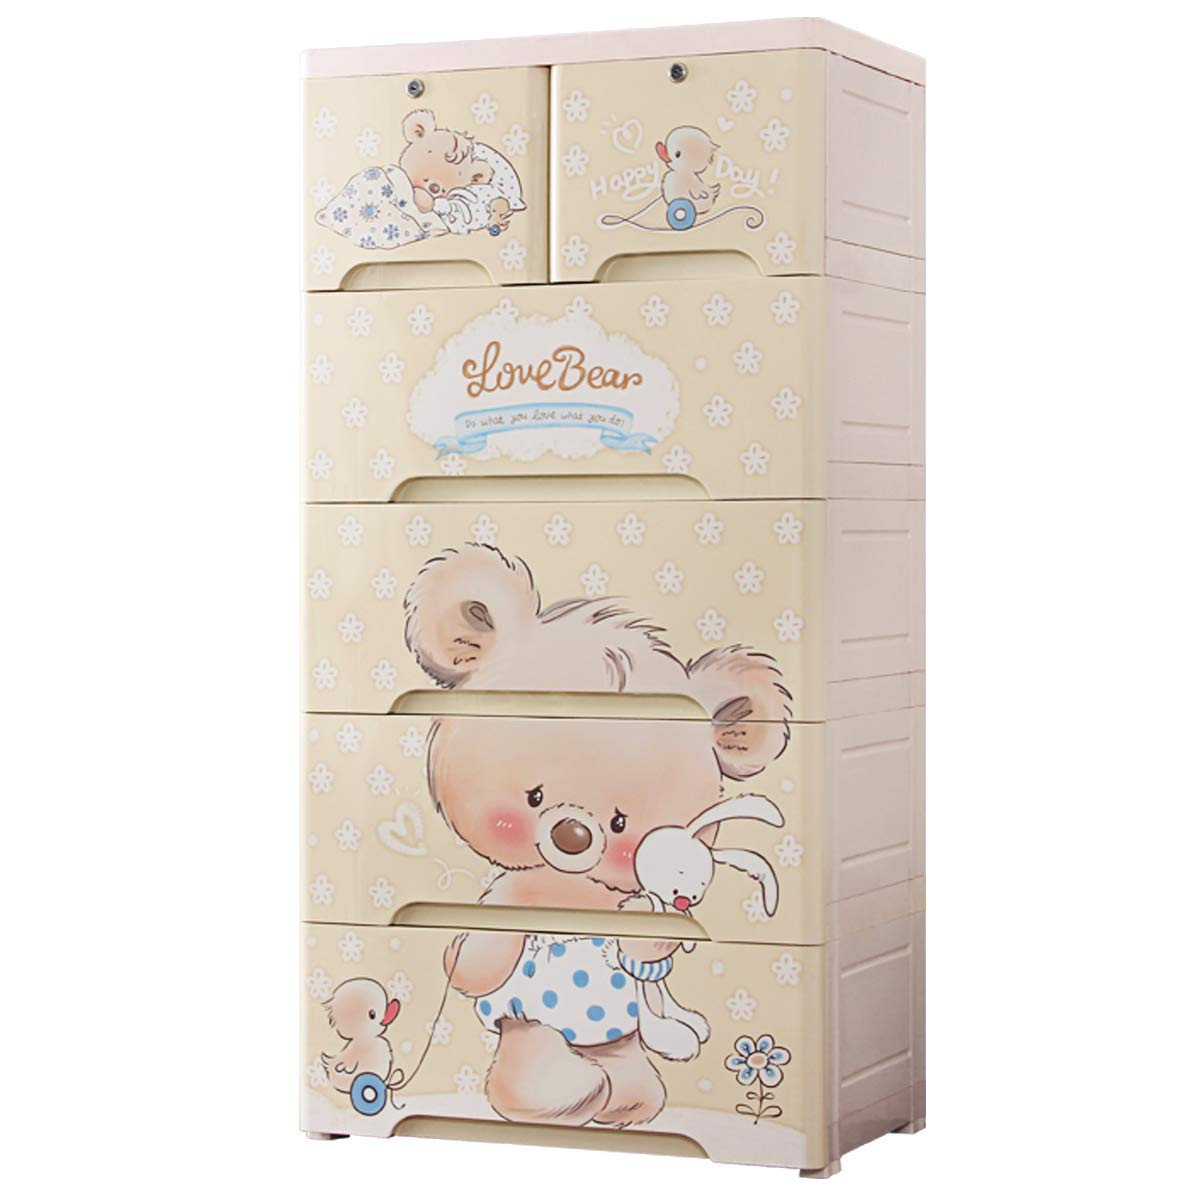 Nafenai 6 Drawer Dresser,Plastic Drawers Storage,Cute Storage Dresser Cabinet with Lock,Chest of Drawers for Bedroom/Playroom Clothes Toys Organizer Armoires,Koala Bear by Nafenai